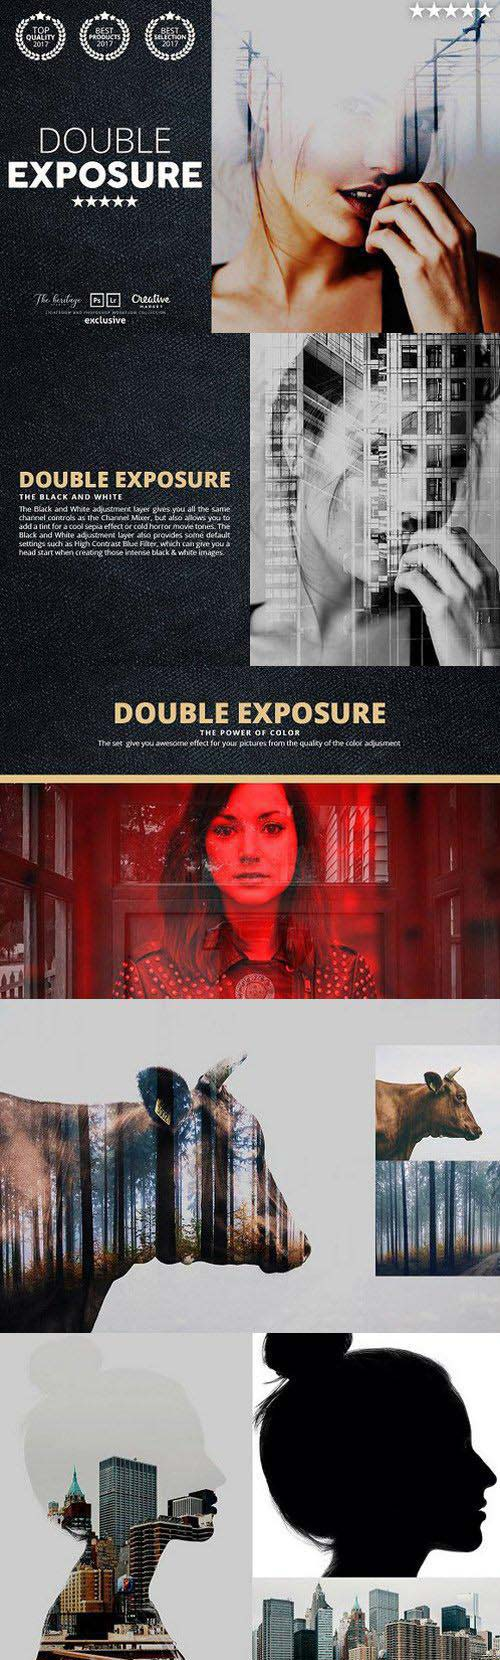 CreativeMarket The DOUBLE EXPOSURE 146 Kit Bundle